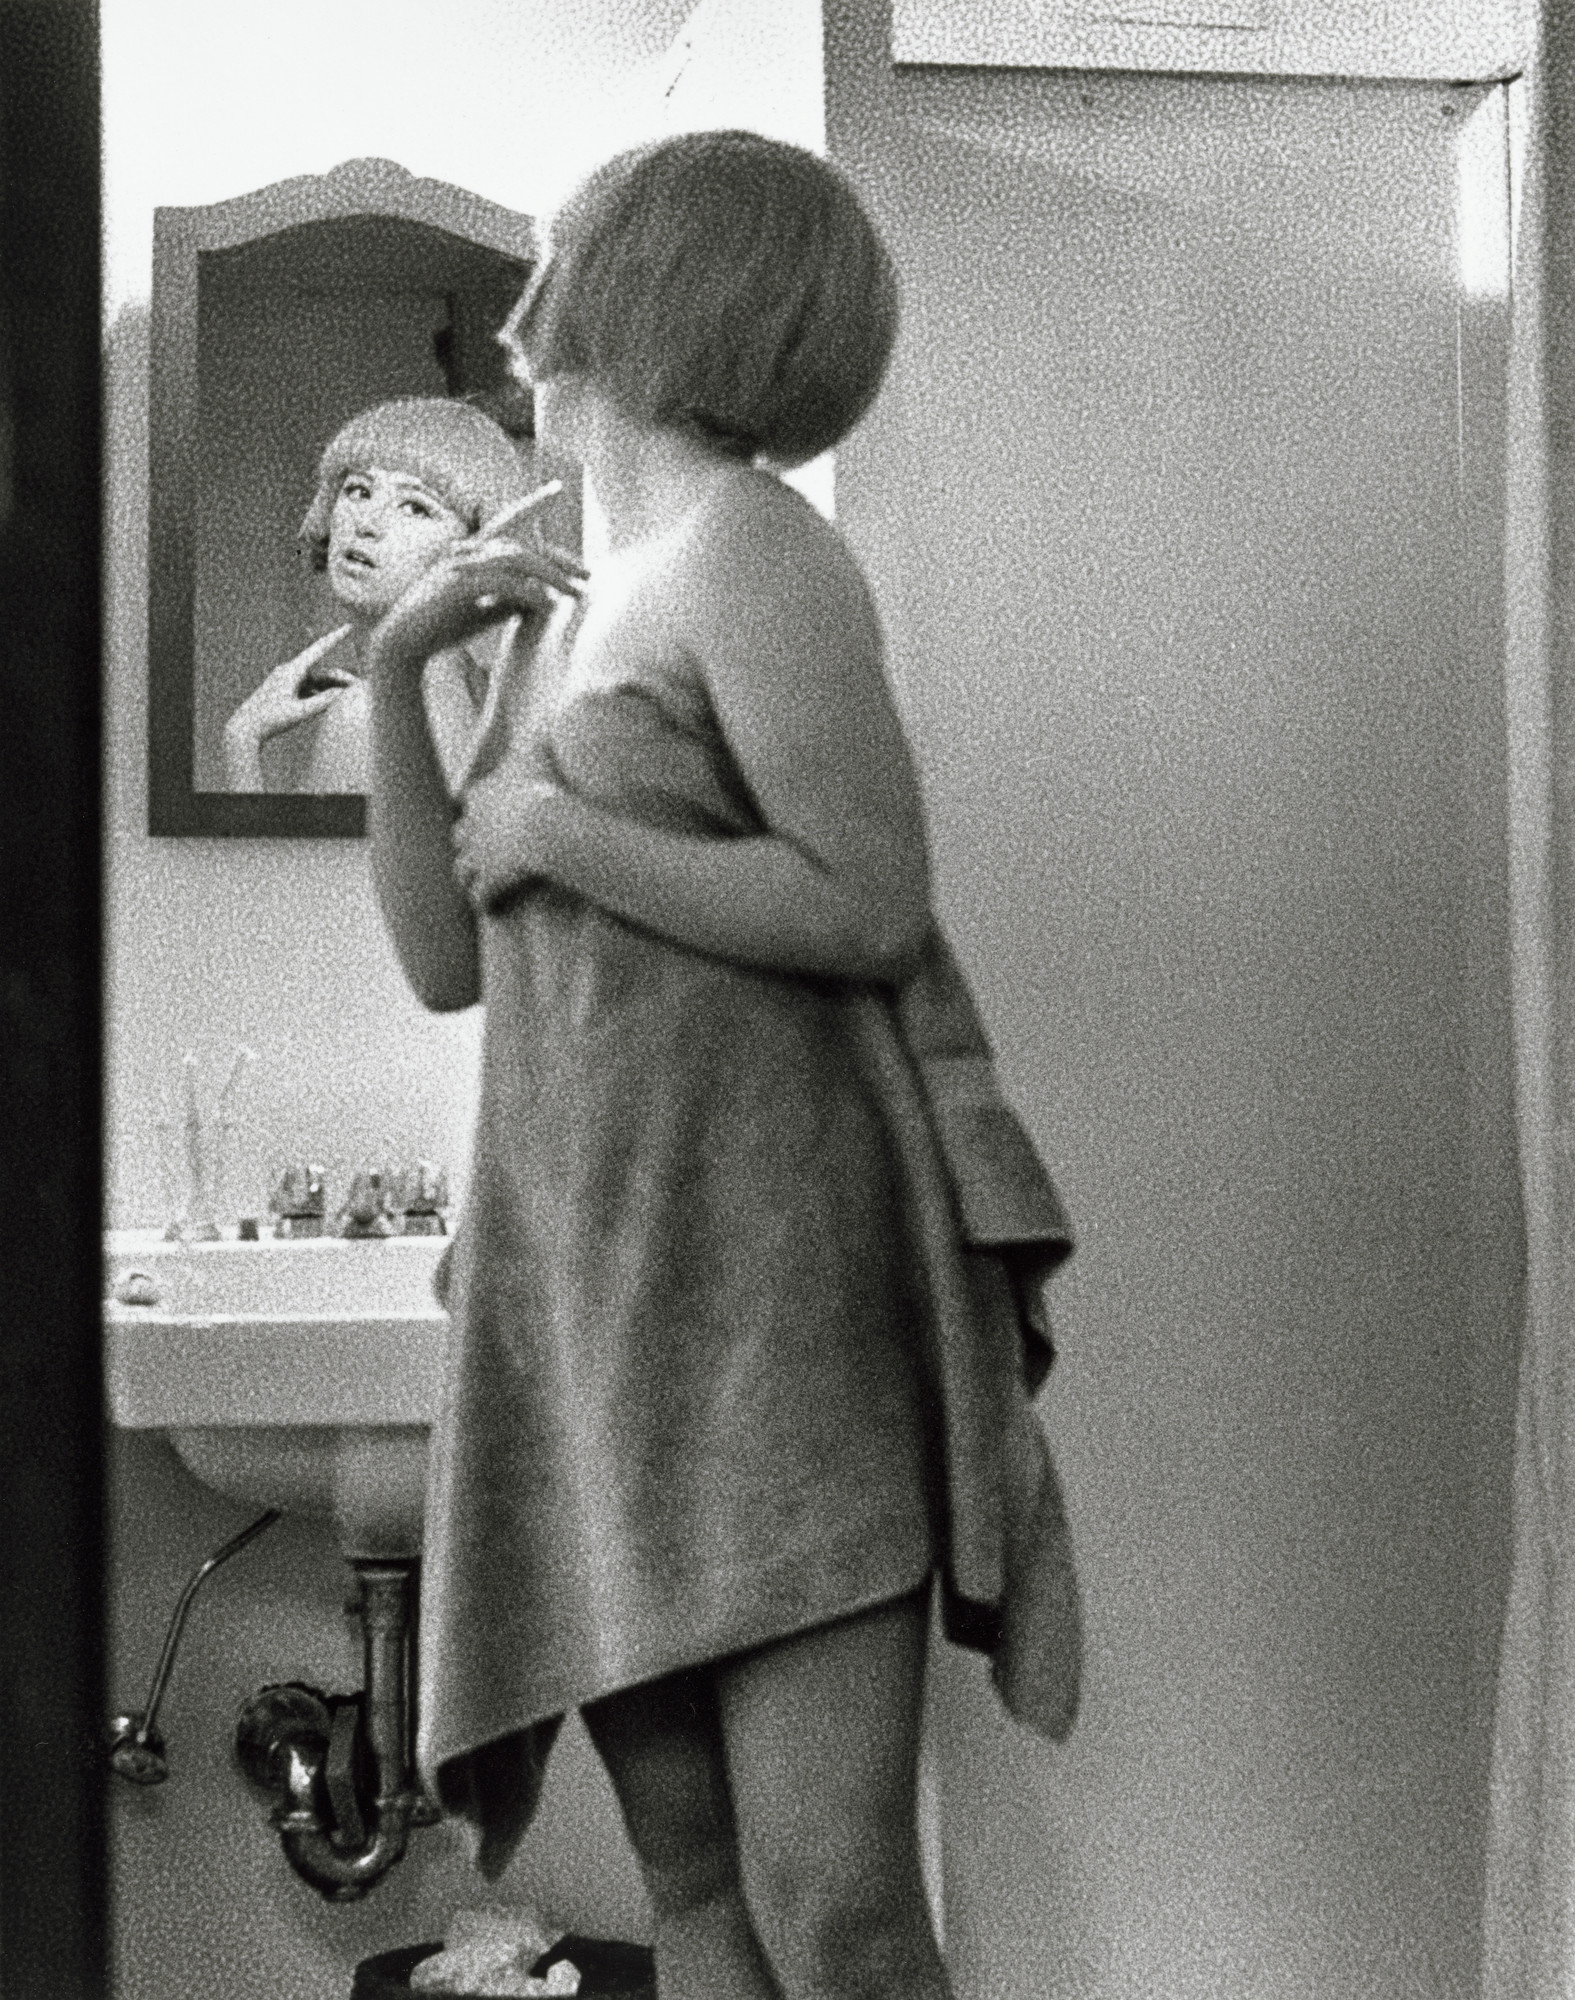 Cindy Sherman. Untitled Film Still #2. 1977